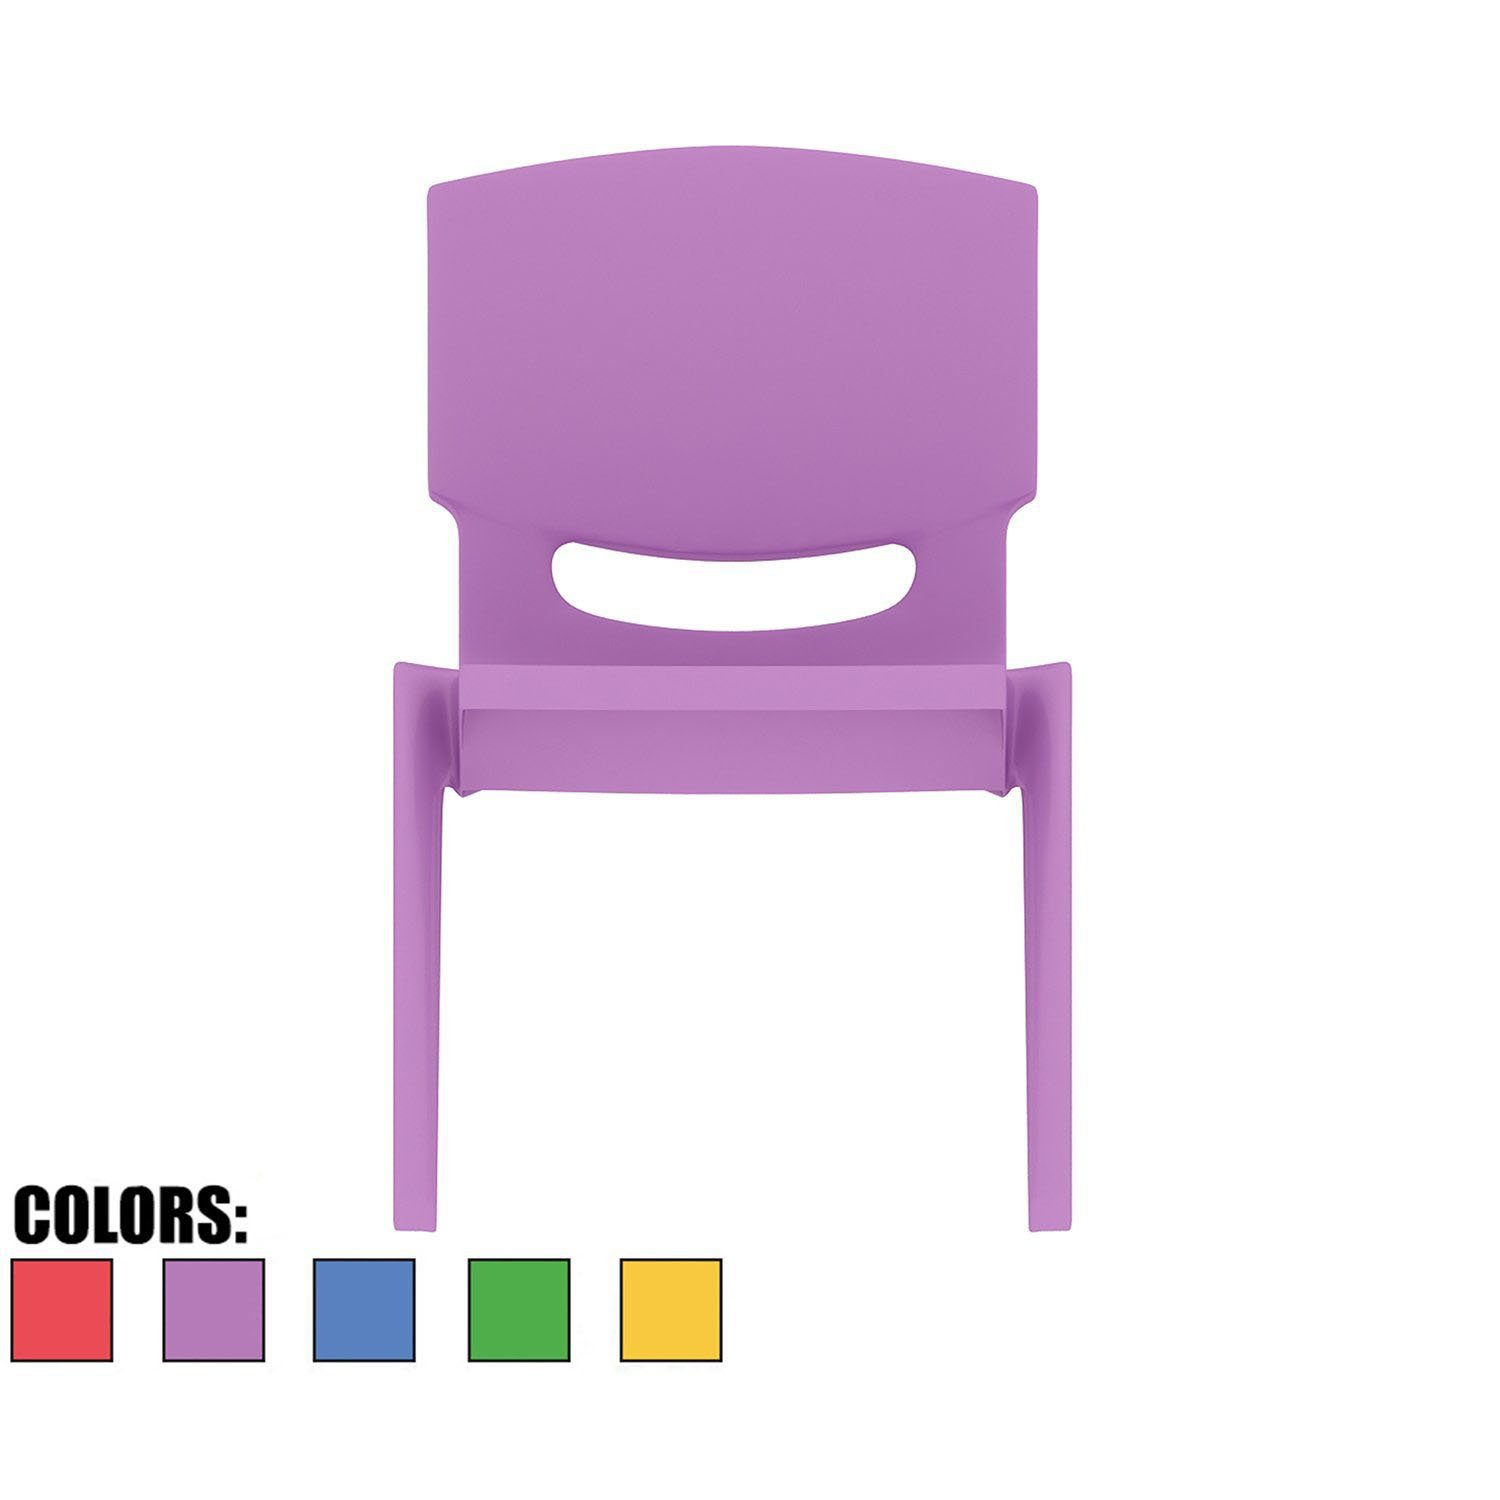 2xhome - Purple - Kids Size Plastic Side Chair 10'' Seat Height Purple Childs Chair Childrens Room School Chairs No Arm Arms Armless Molded Plastic Seat Stackable